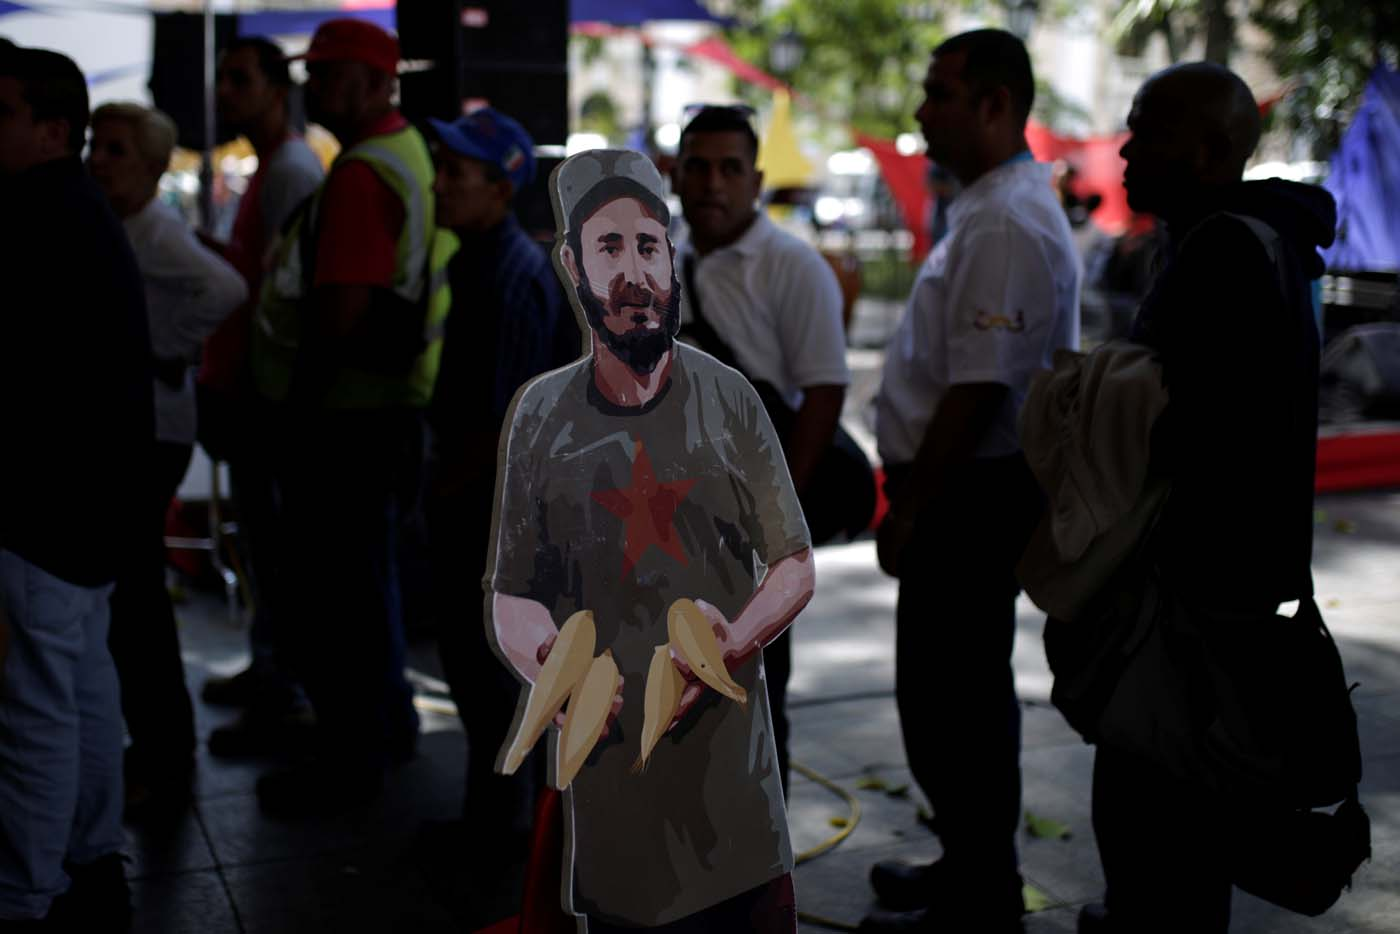 A cardboard cut-out of Cuba's late President Fidel Castro is seen as people wait to apply for a card that will register them for government social programmes, in Caracas, Venezuela January 20, 2017. REUTERS/Marco Bello